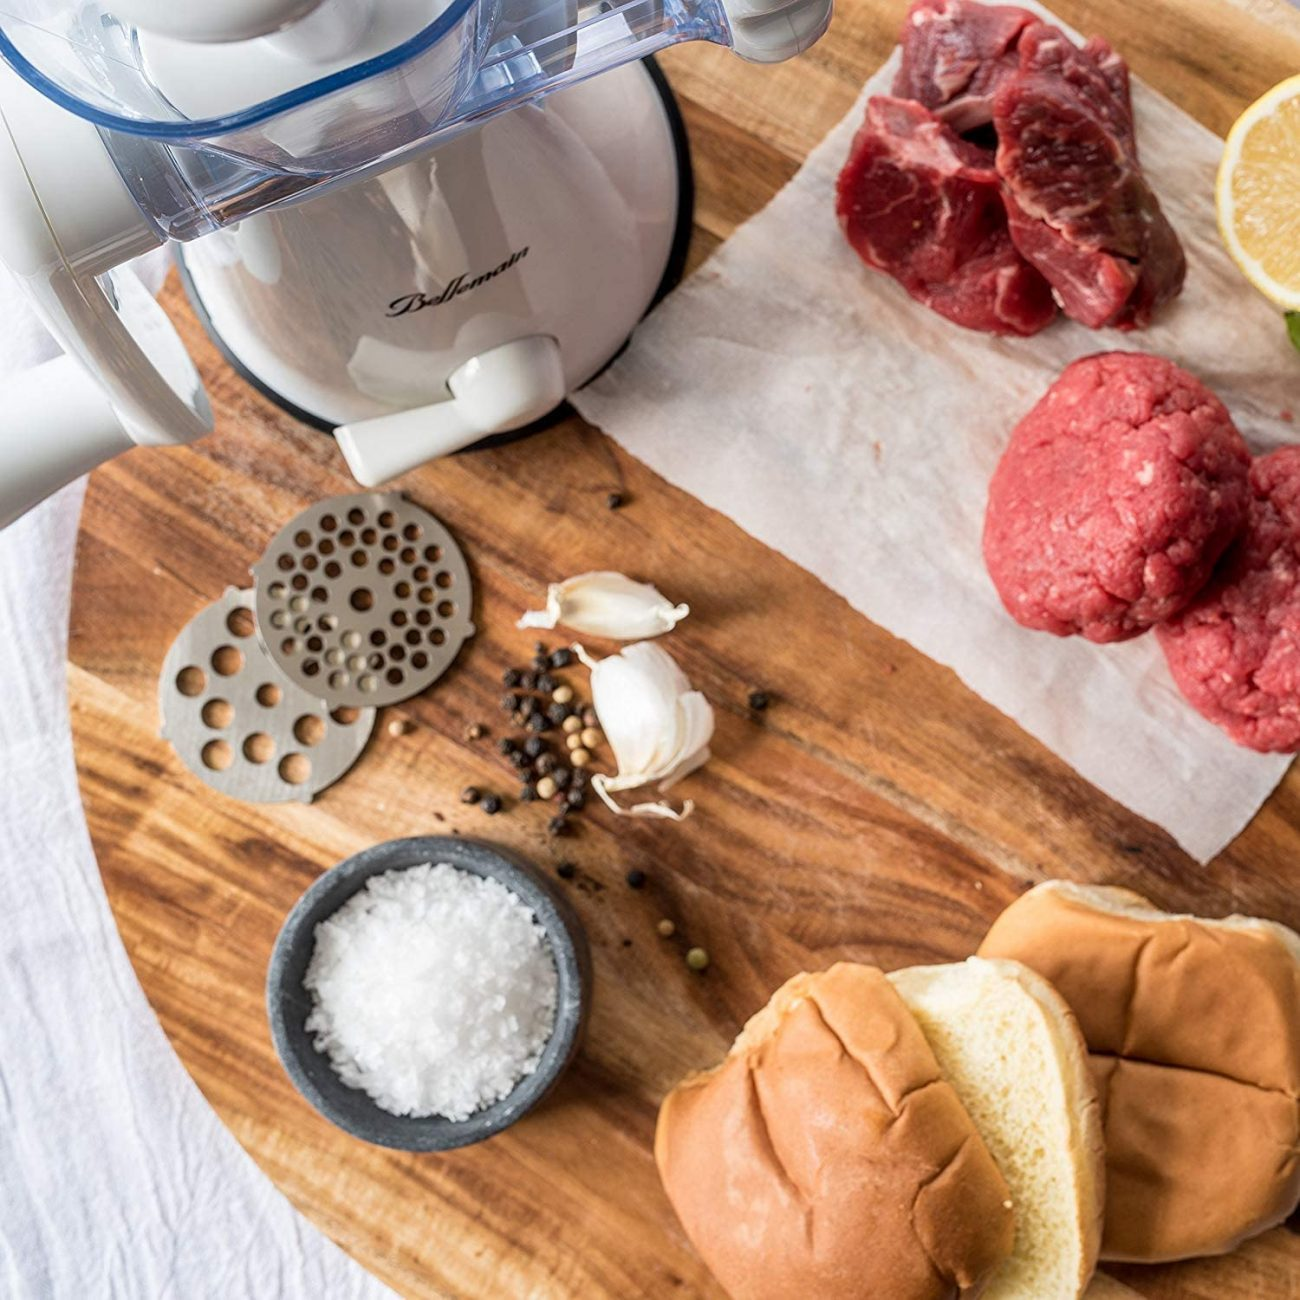 Best 8 Manual Meat Grinders on Amazon